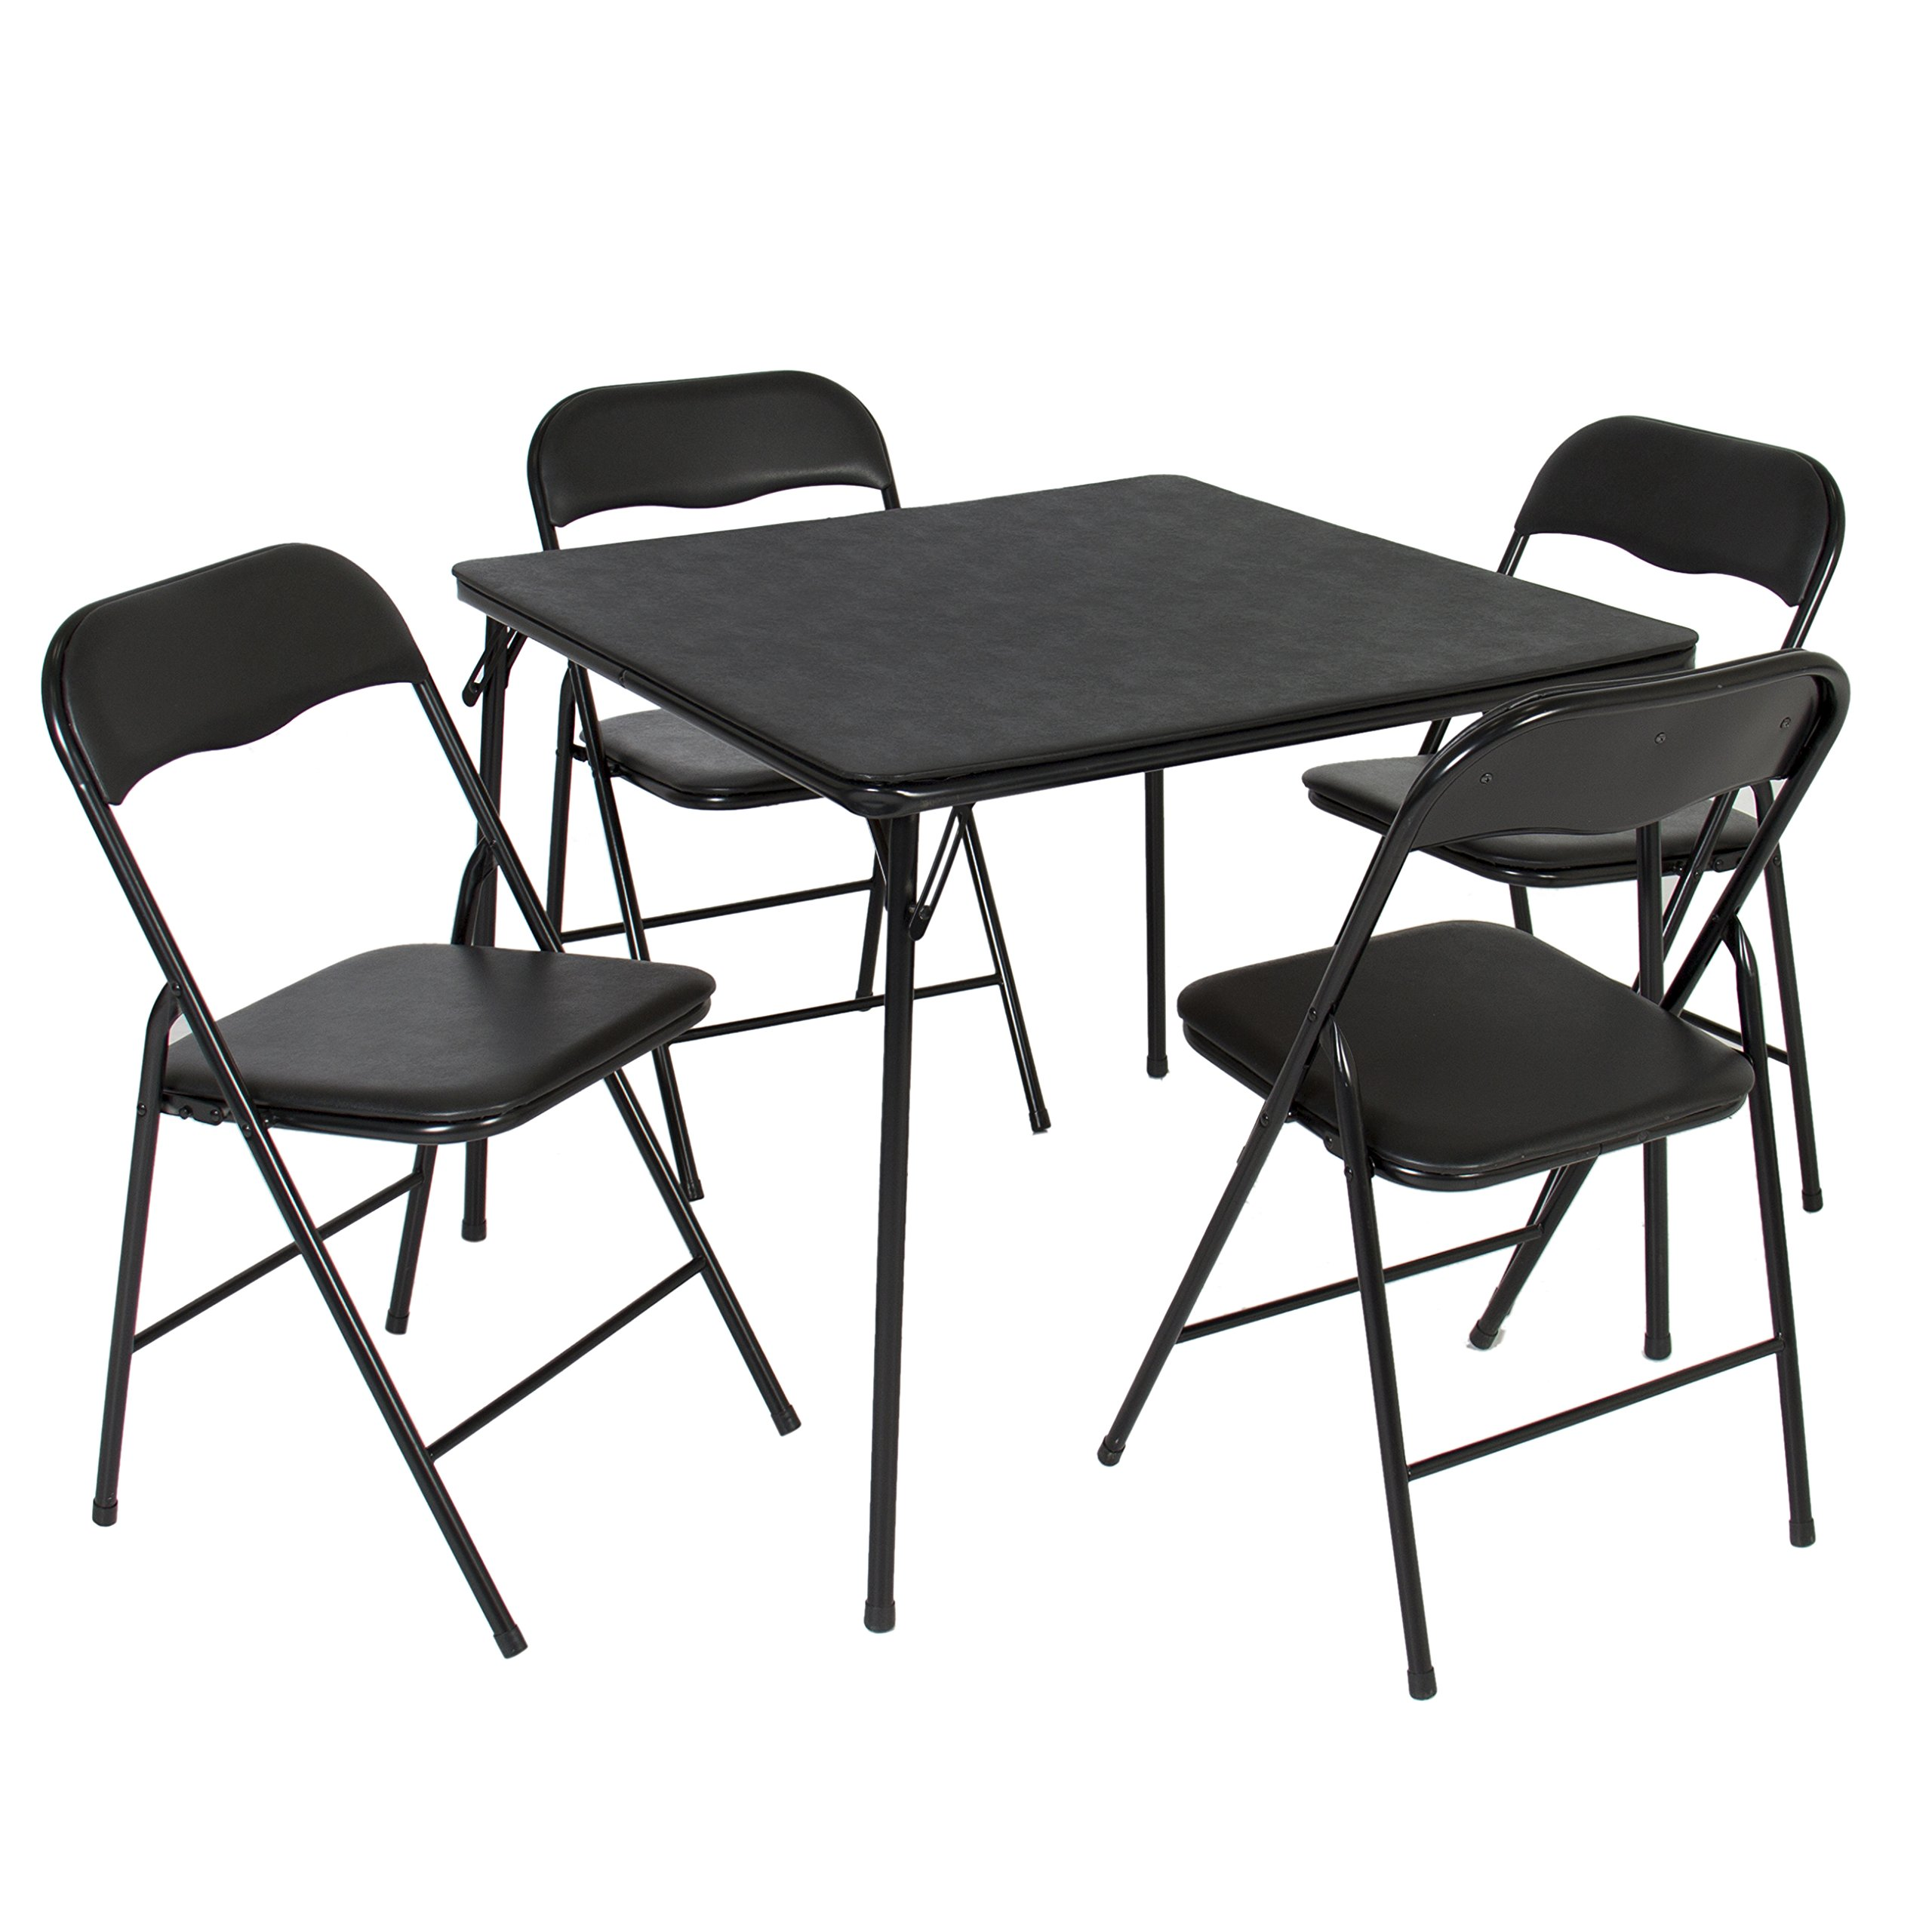 Best Choice Products 5-Piece Home Multipurpose Dining Set w/Folding Table and Chairs - Black